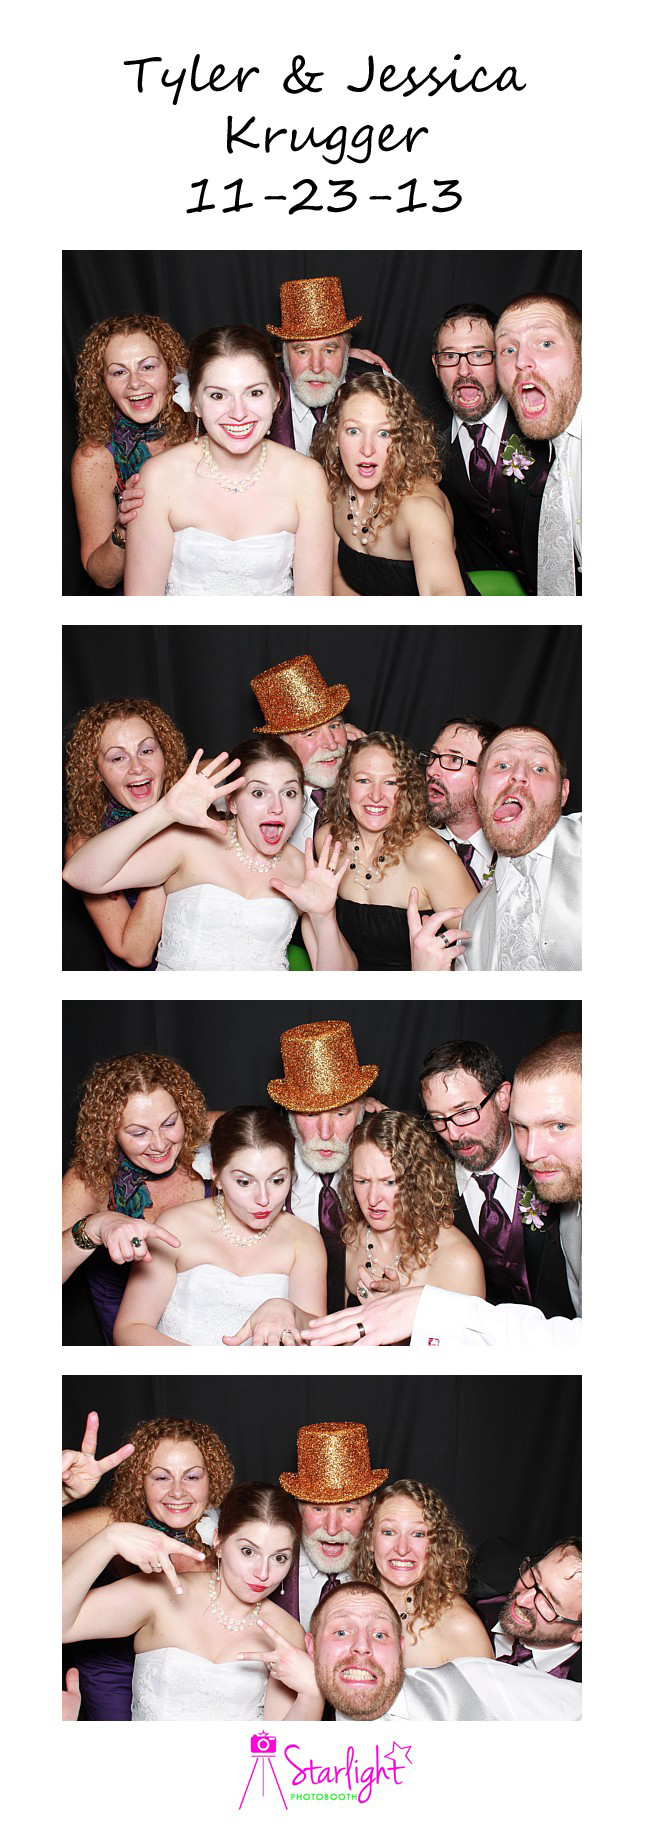 Starlight Photo Booth Erie PA Photo Strip